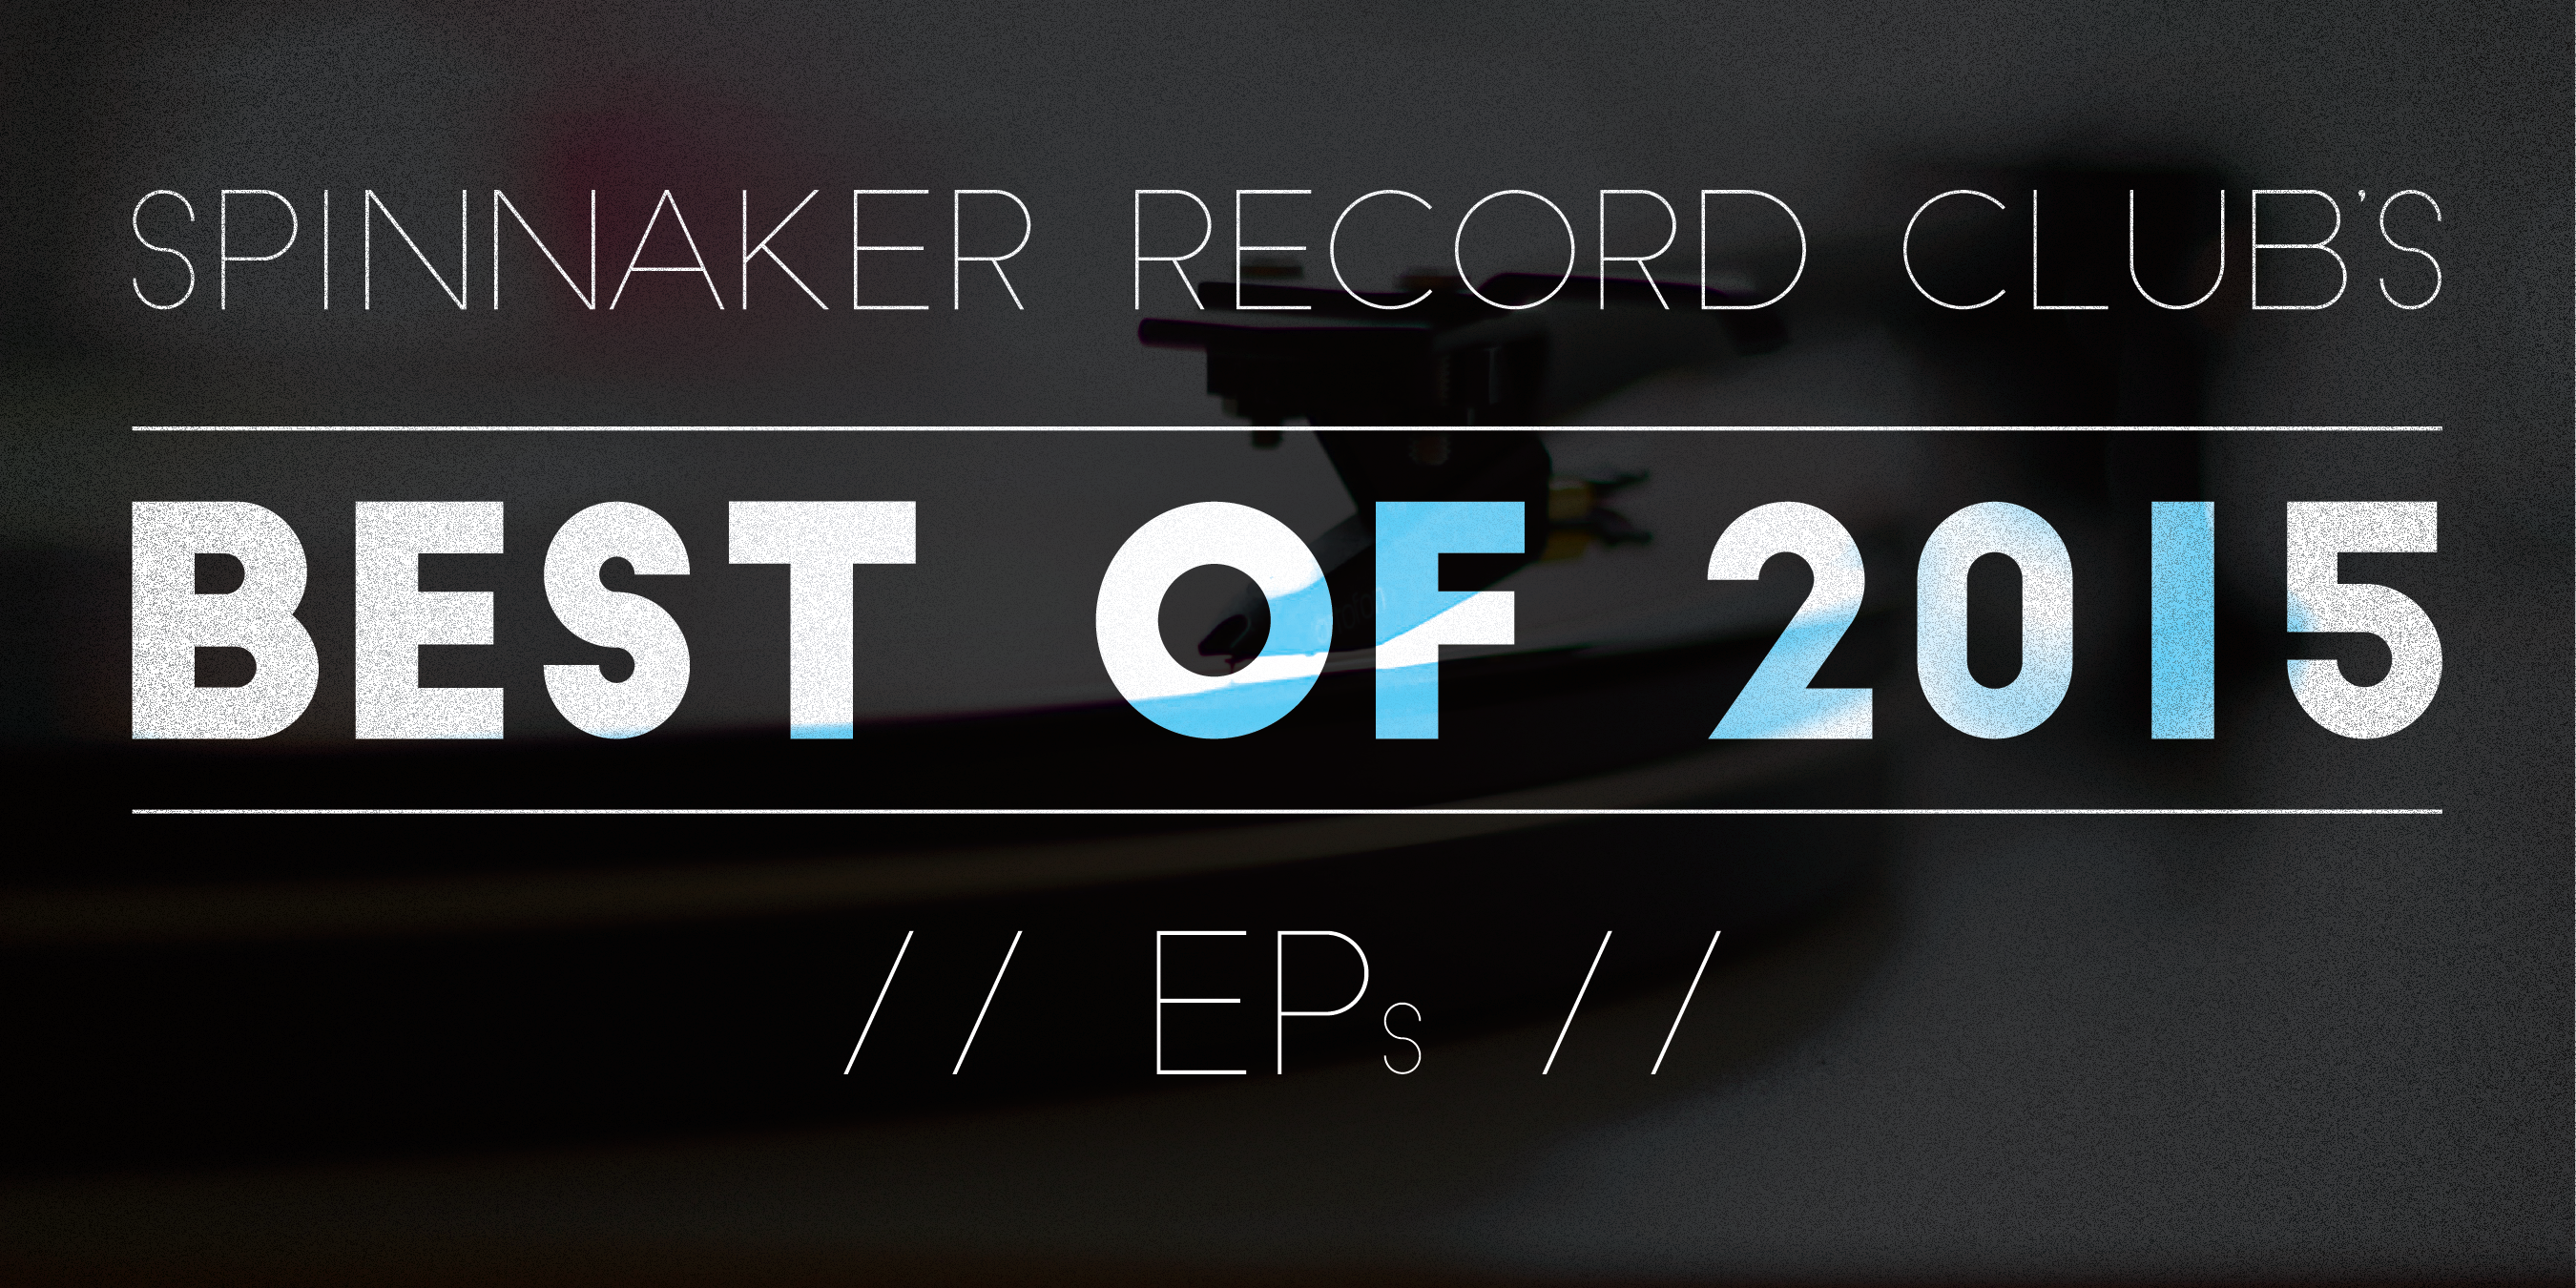 Spinnaker Record Club's Best of 2015: EPs